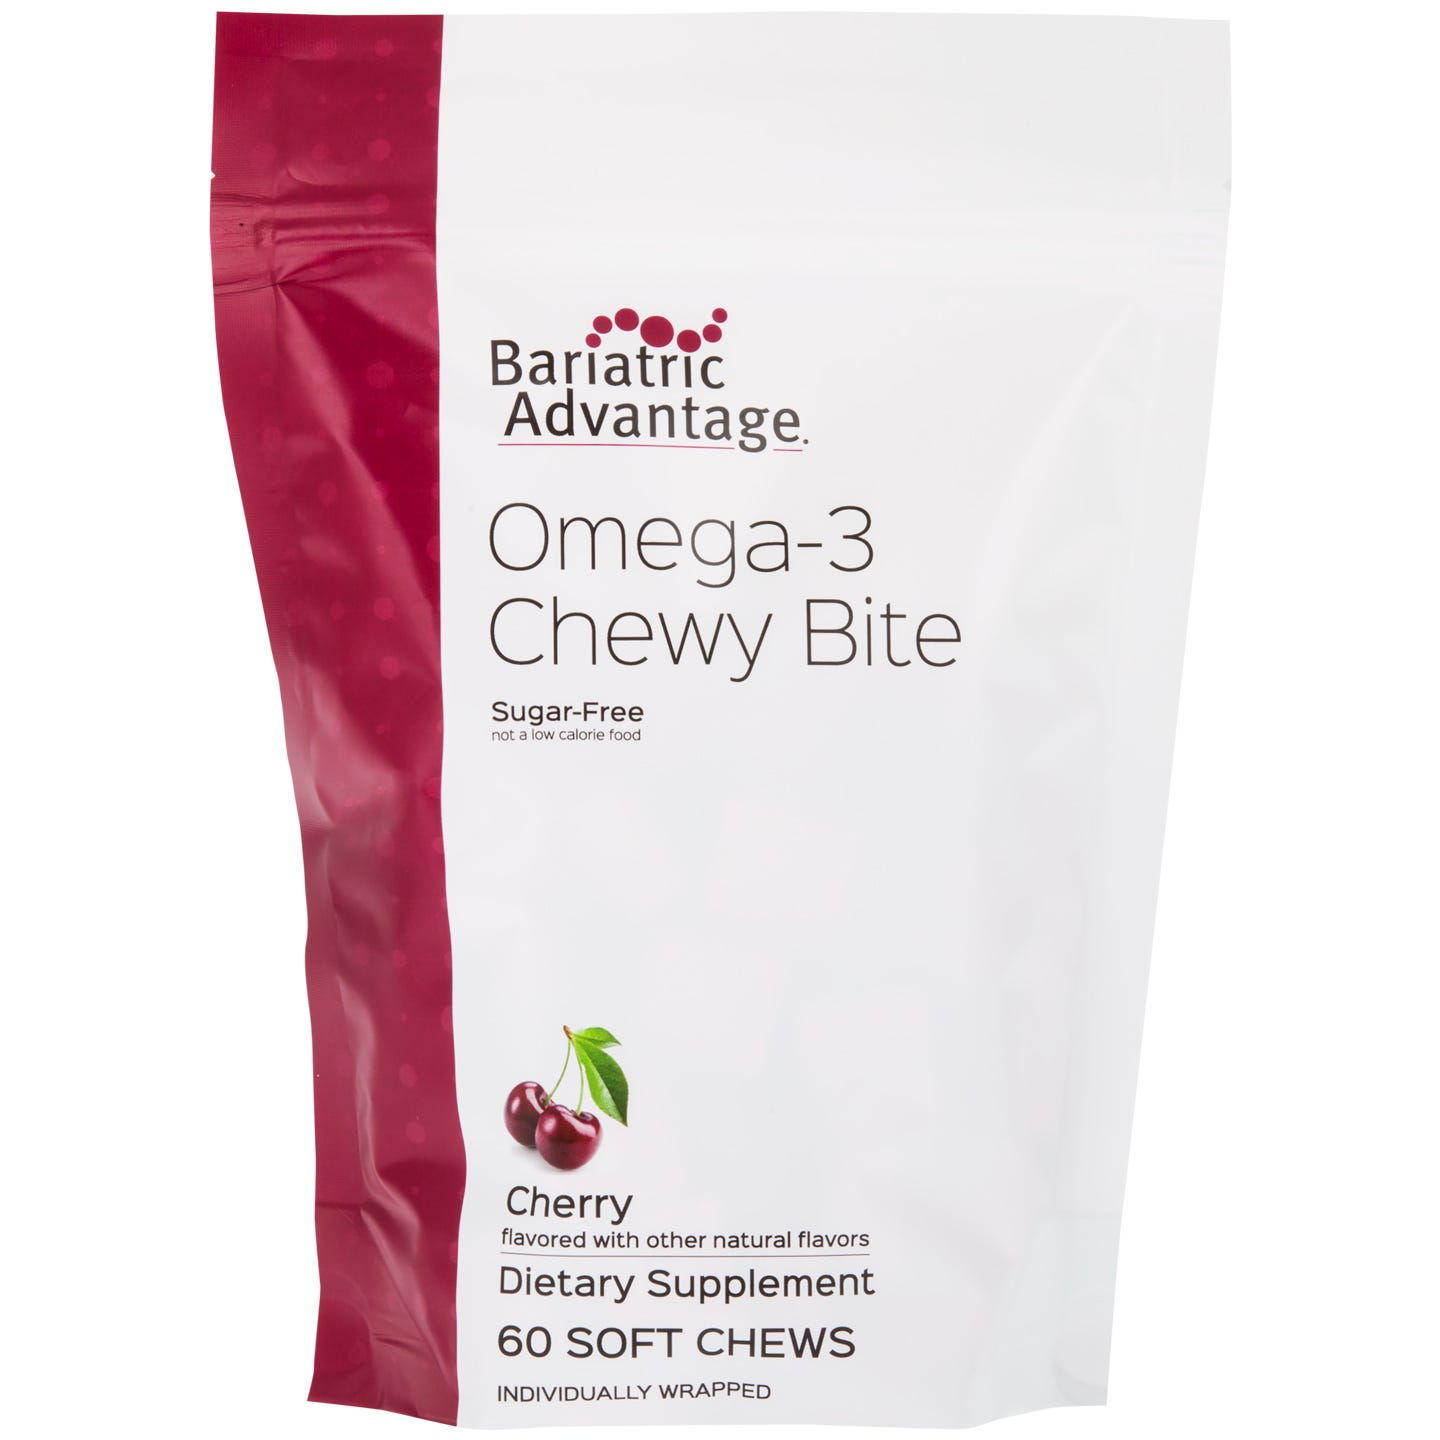 Omega-3 Chewy Bites Cherry (60 ct) – Bariatric Advantage